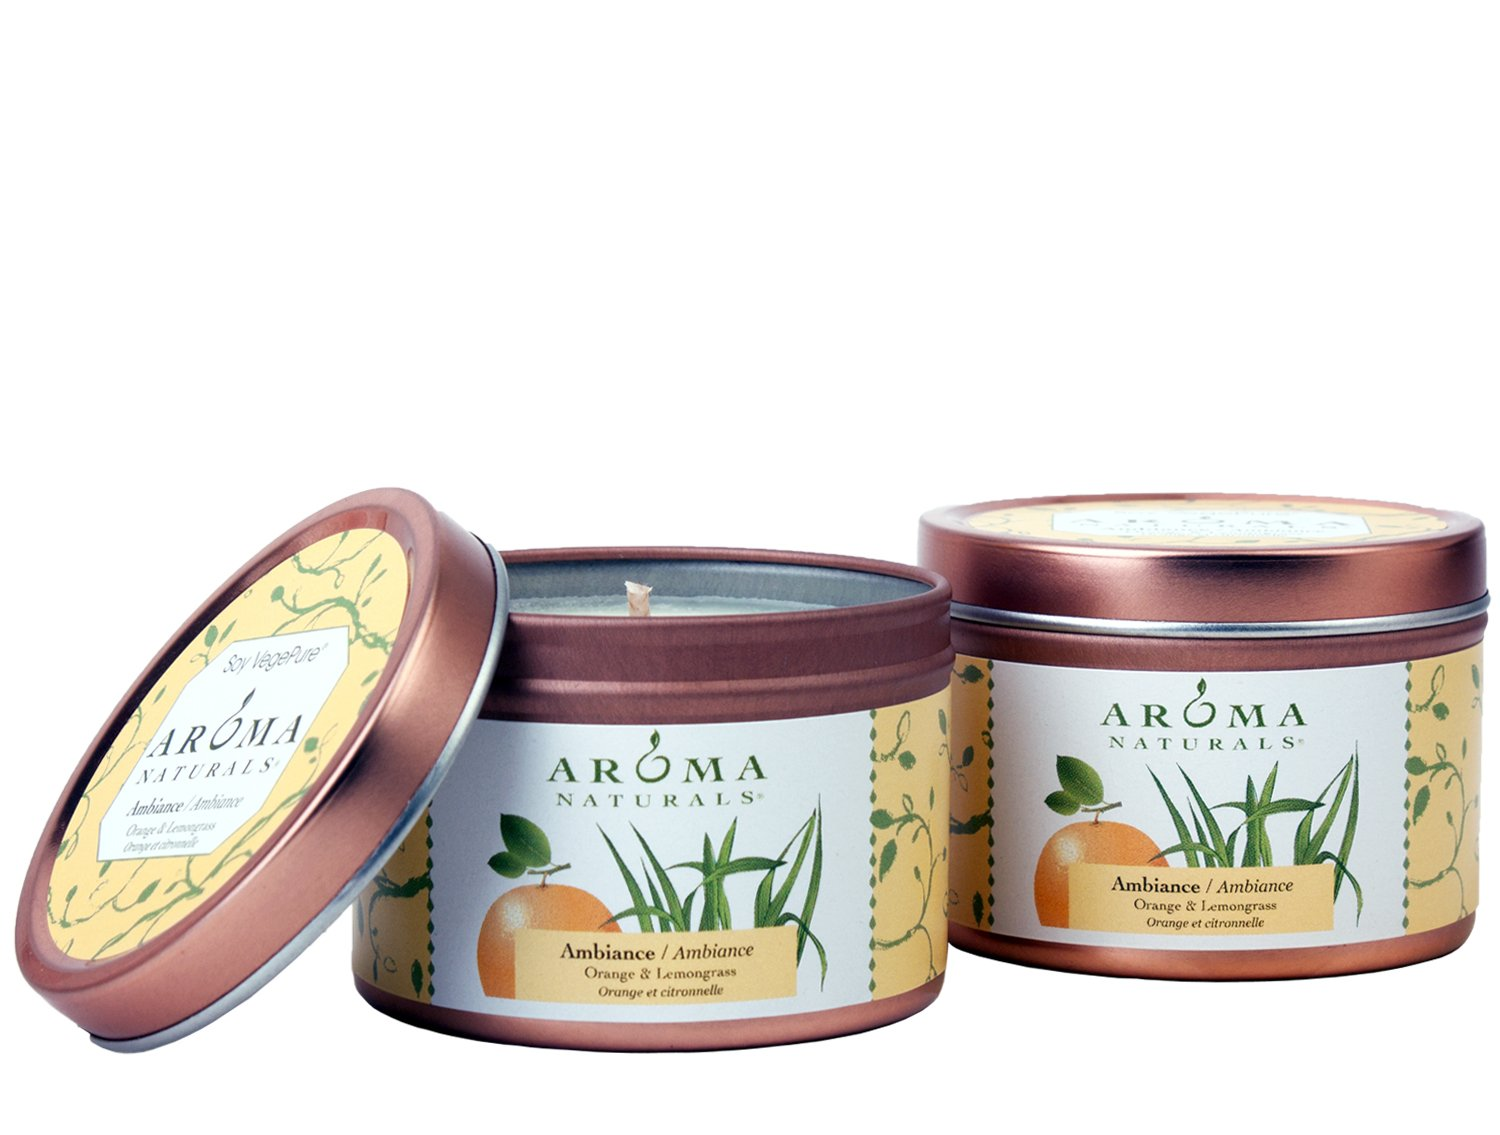 Aroma Naturals Tin Candle Lavender Essential Oil Natural Soy Scented, Tranquility, 2 Count 23521